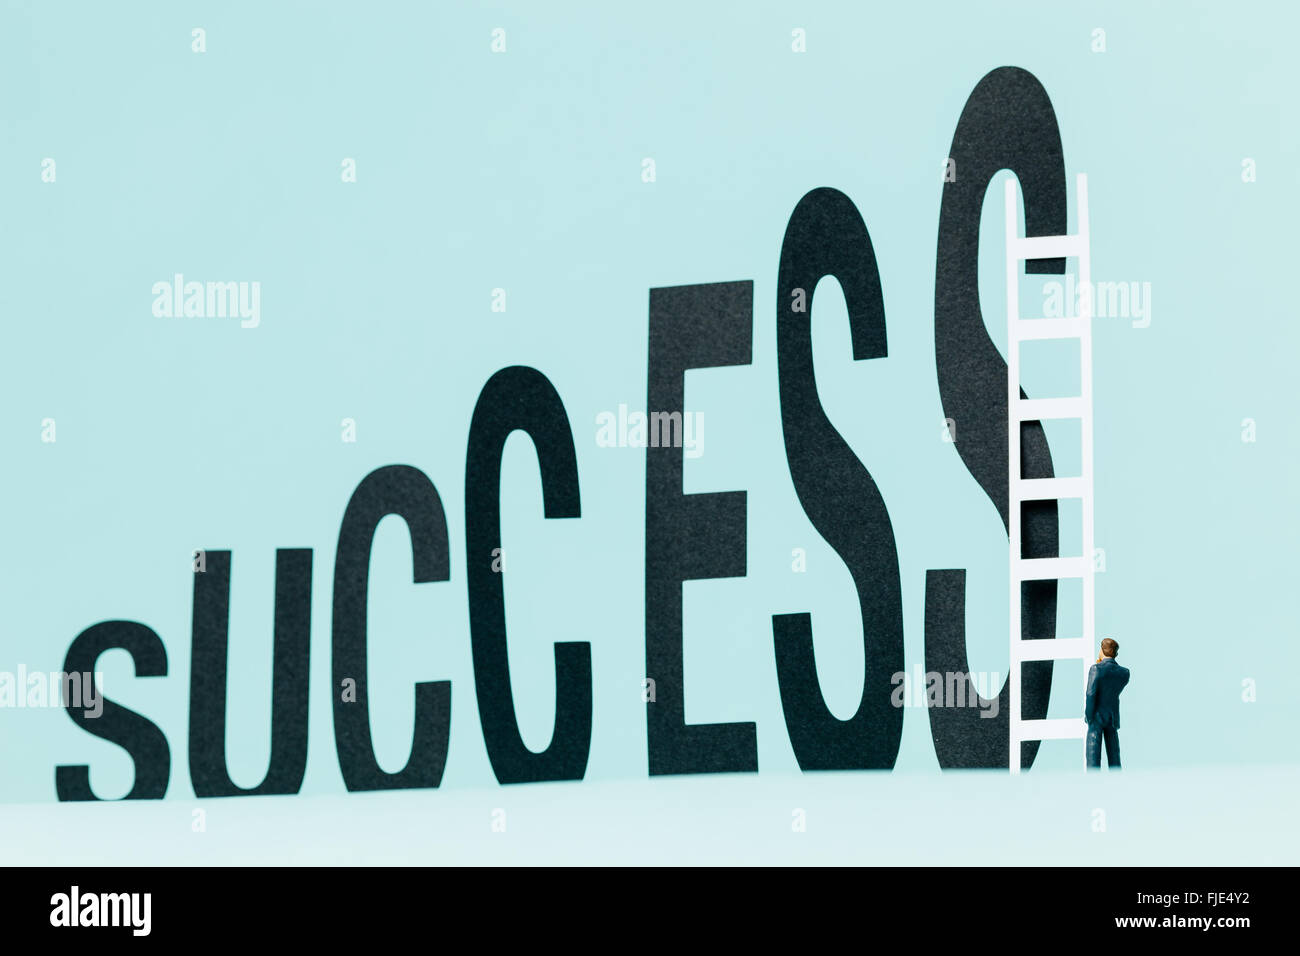 Miniature businessman observing a ladder ready to get a promotion and be successful. - Stock Image